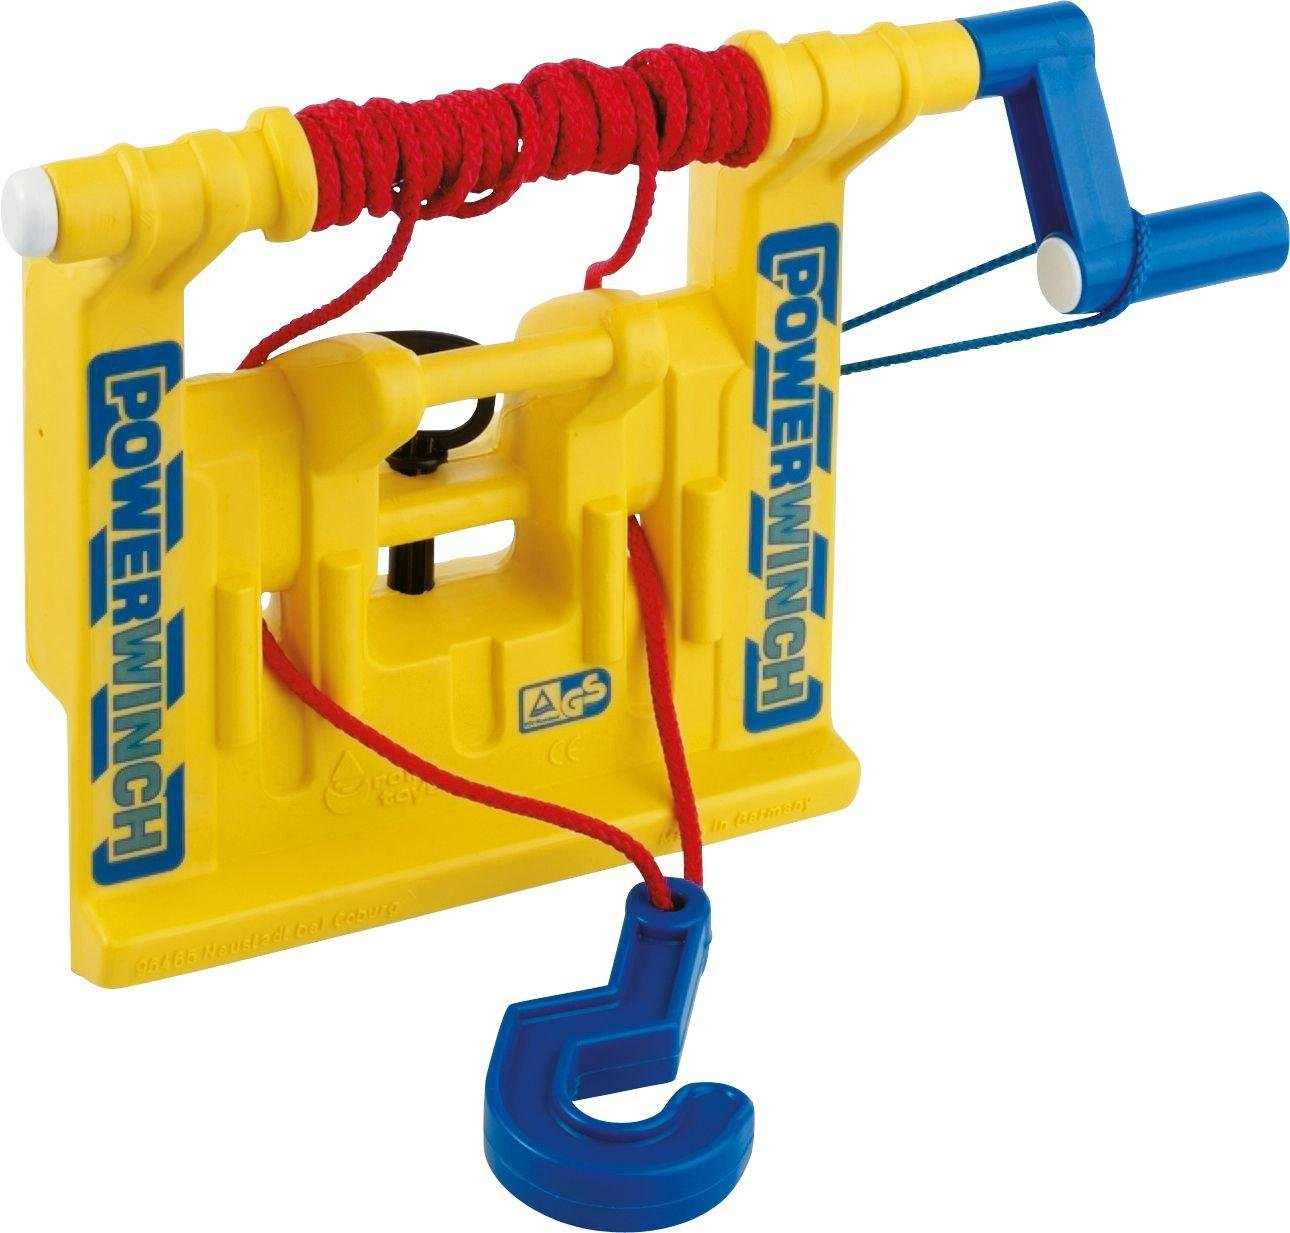 Yellow Winch, Hook and Tow Rope for Child's Tractor.